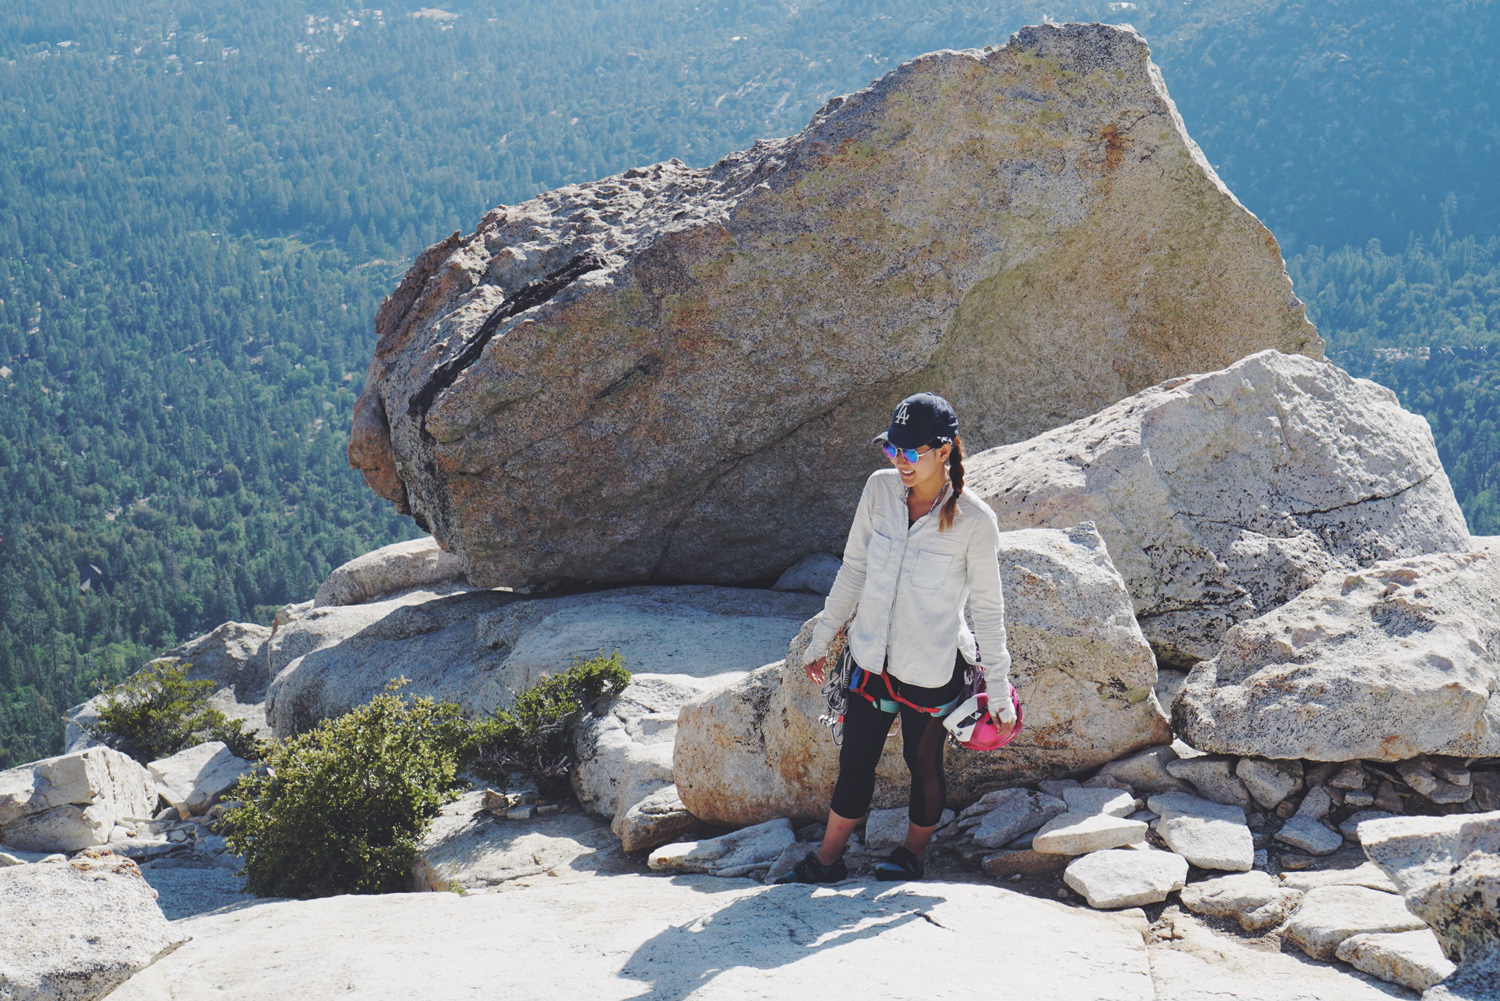 Me at the top of Tahquitz